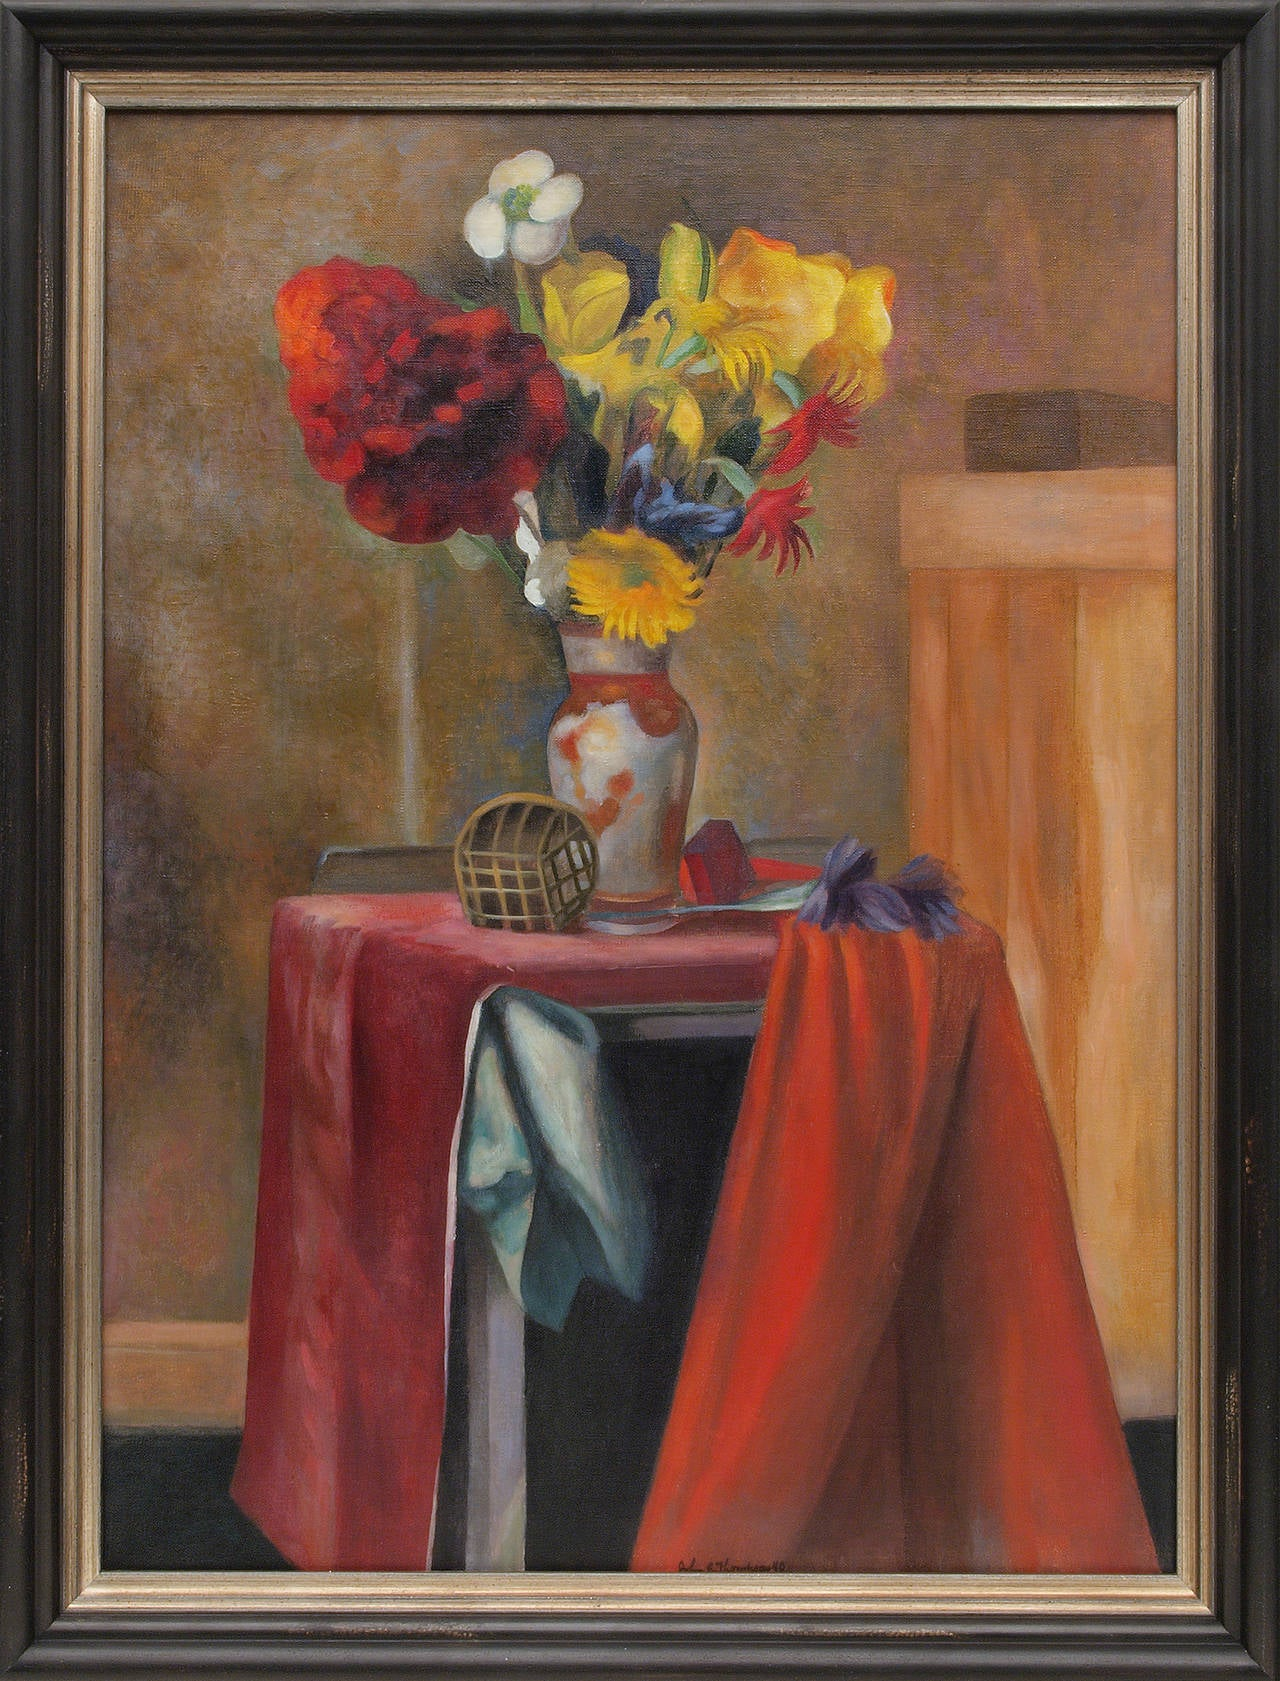 John Edward Thompson Interior Painting - Untitled (Still Life with Flowers)